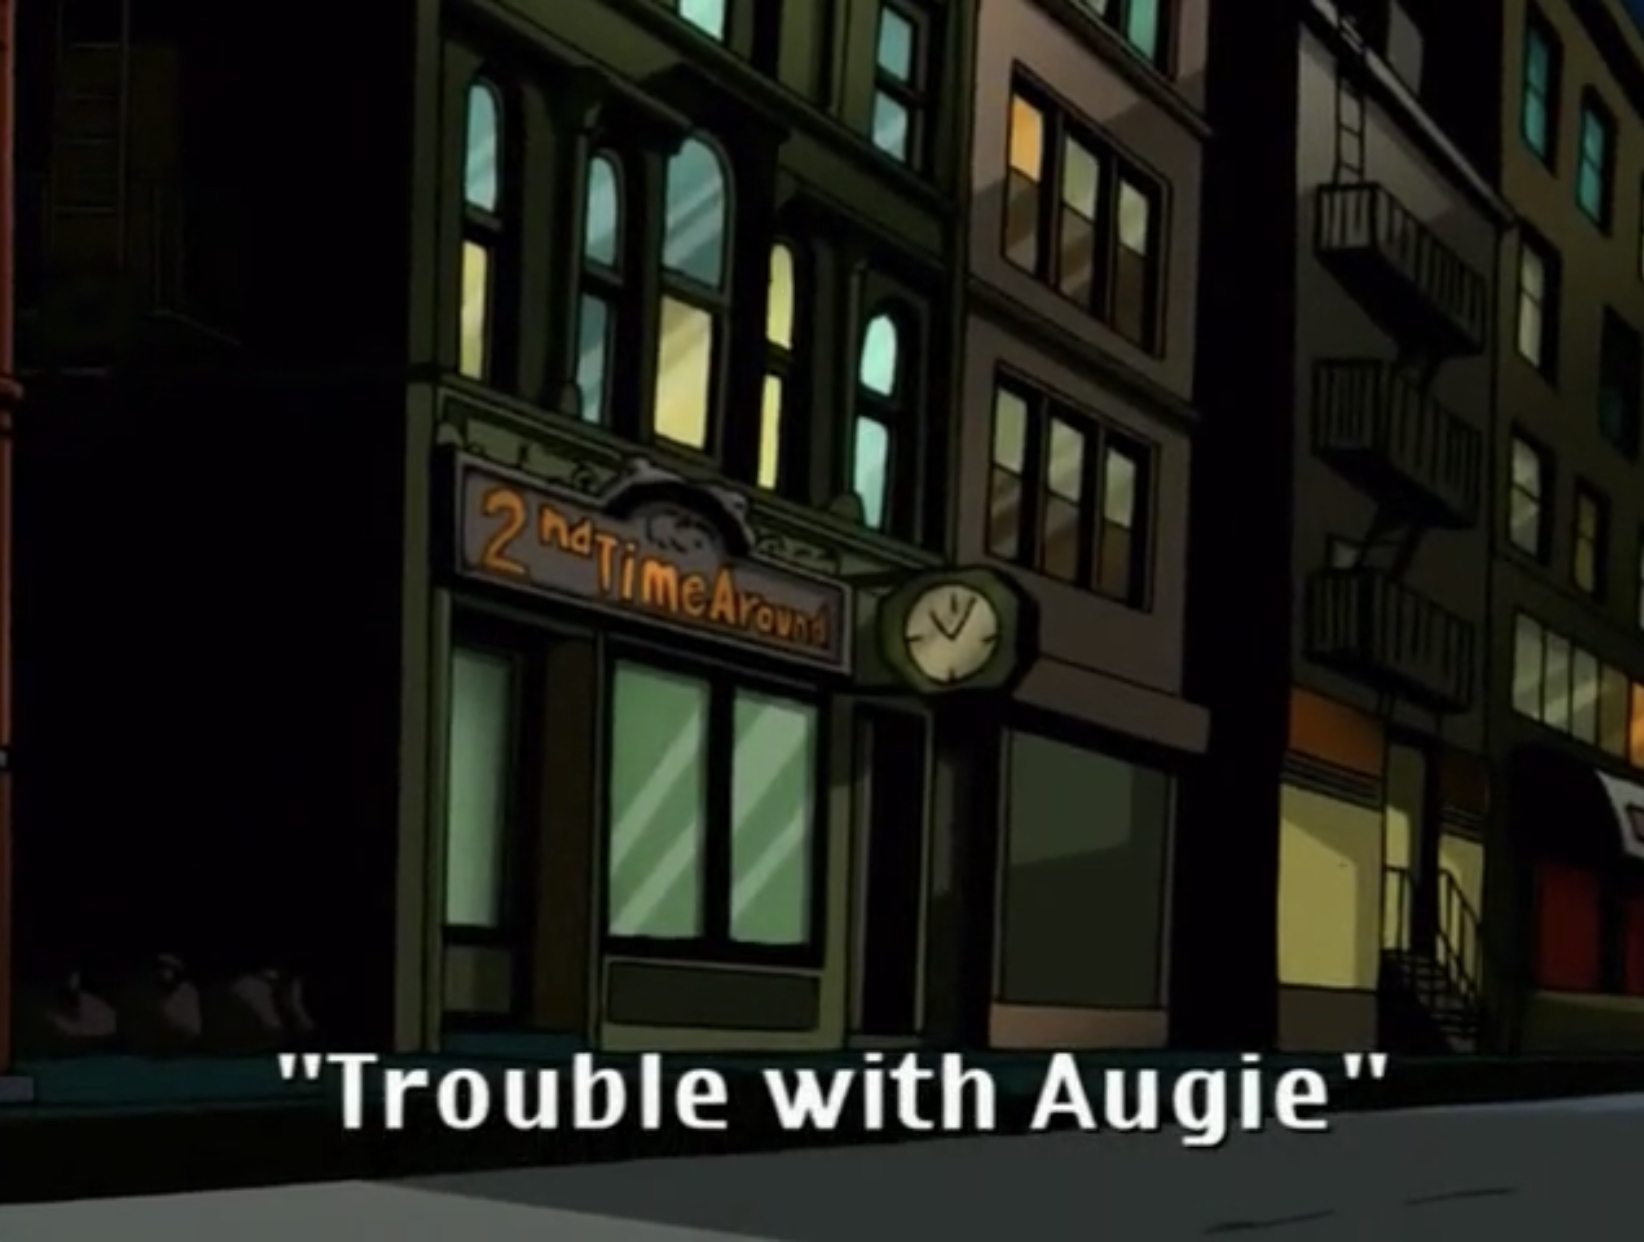 Trouble with Augie